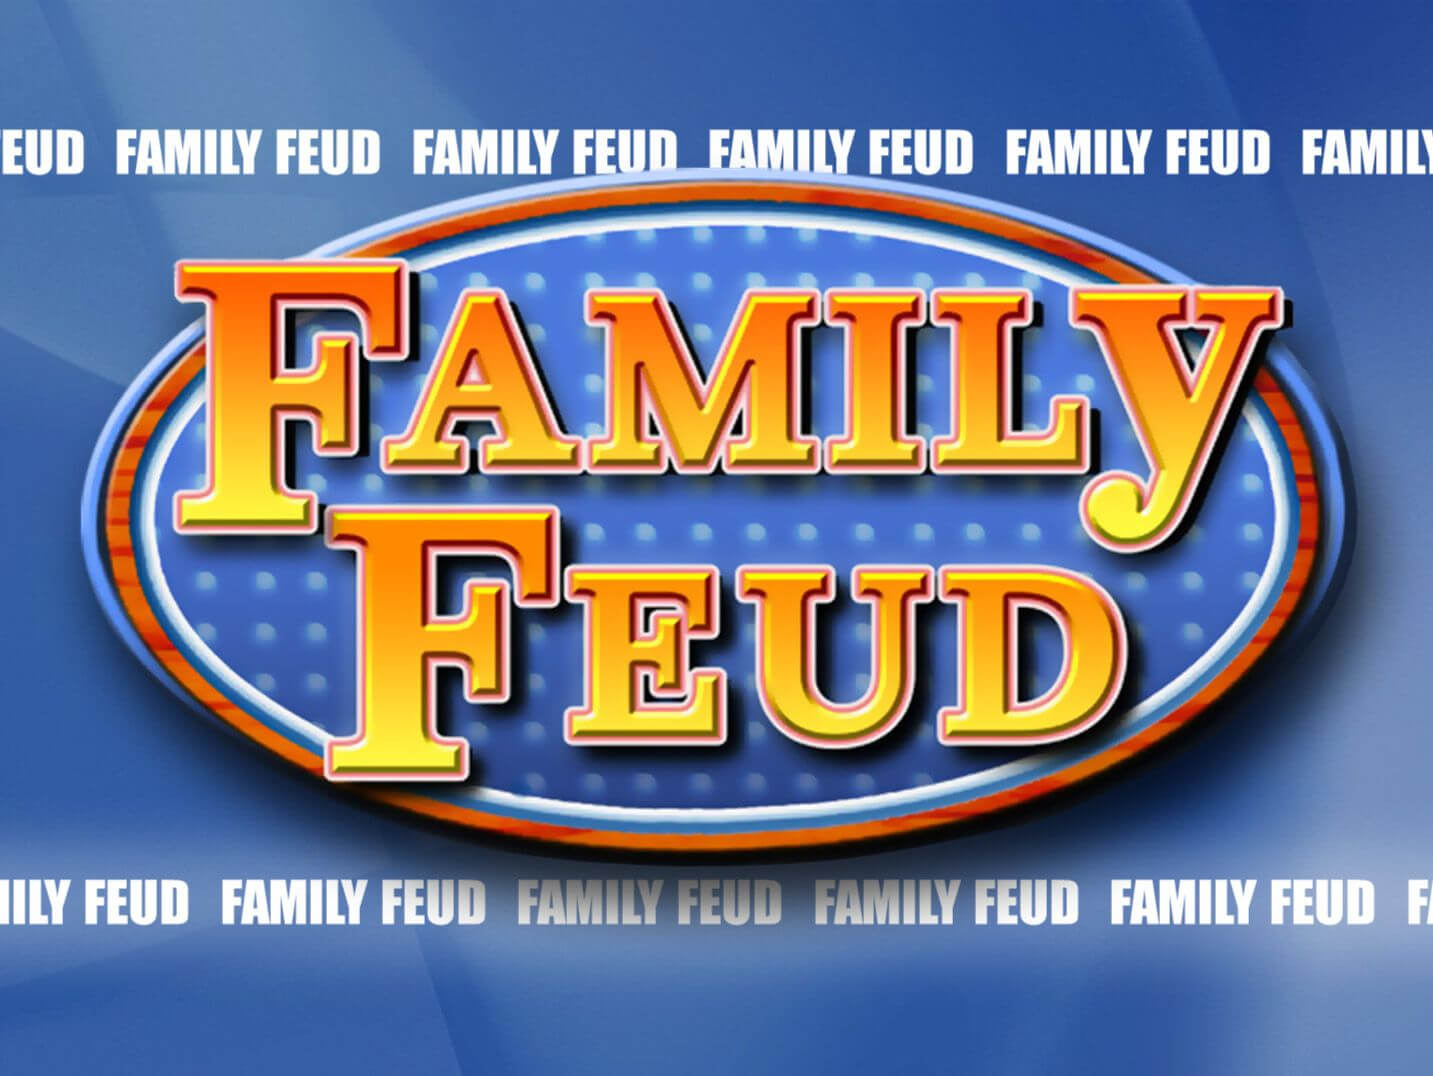 Family Feud Powerpoint Template 1 | Family Feud, Family Feud with regard to Family Feud Powerpoint Template Free Download